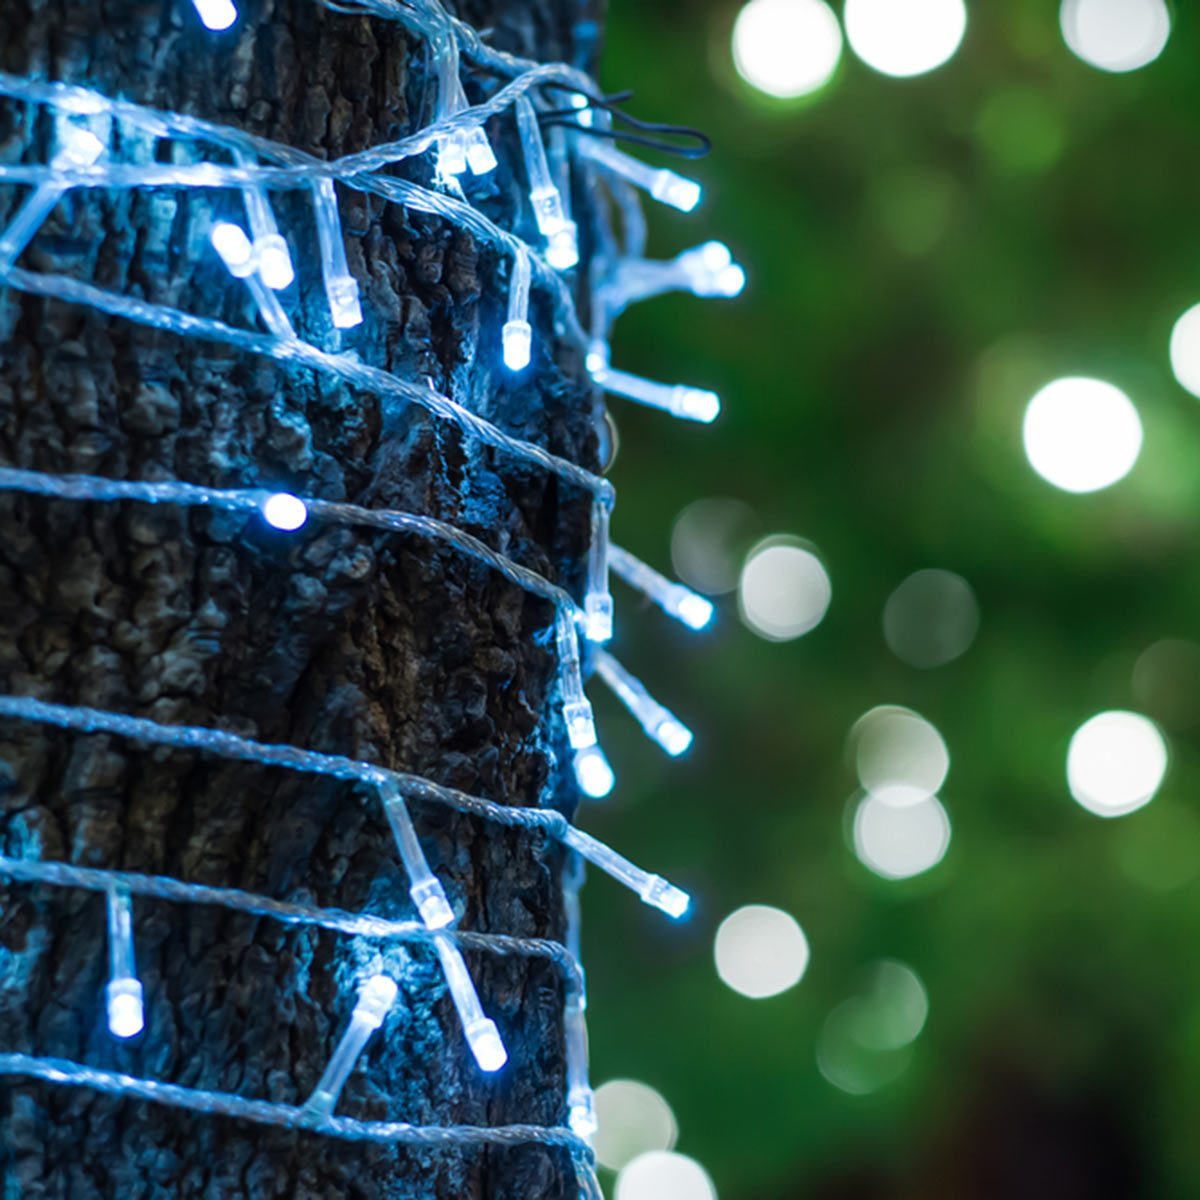 Outdoor Tree Lighting Ideas: Wrap Trunks